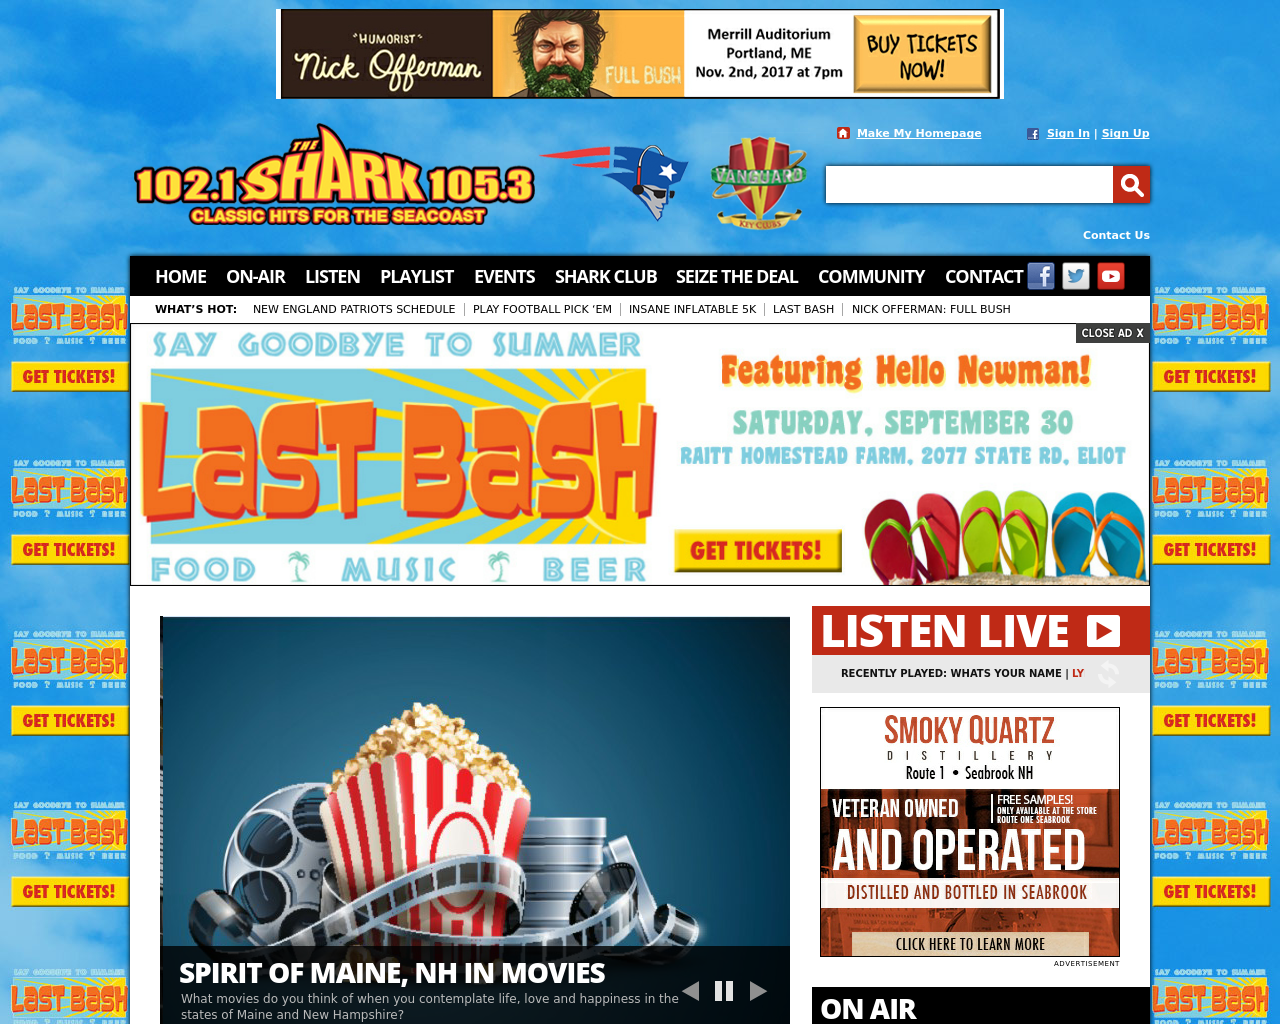 102.1-The-Shark-1053-Advertising-Reviews-Pricing